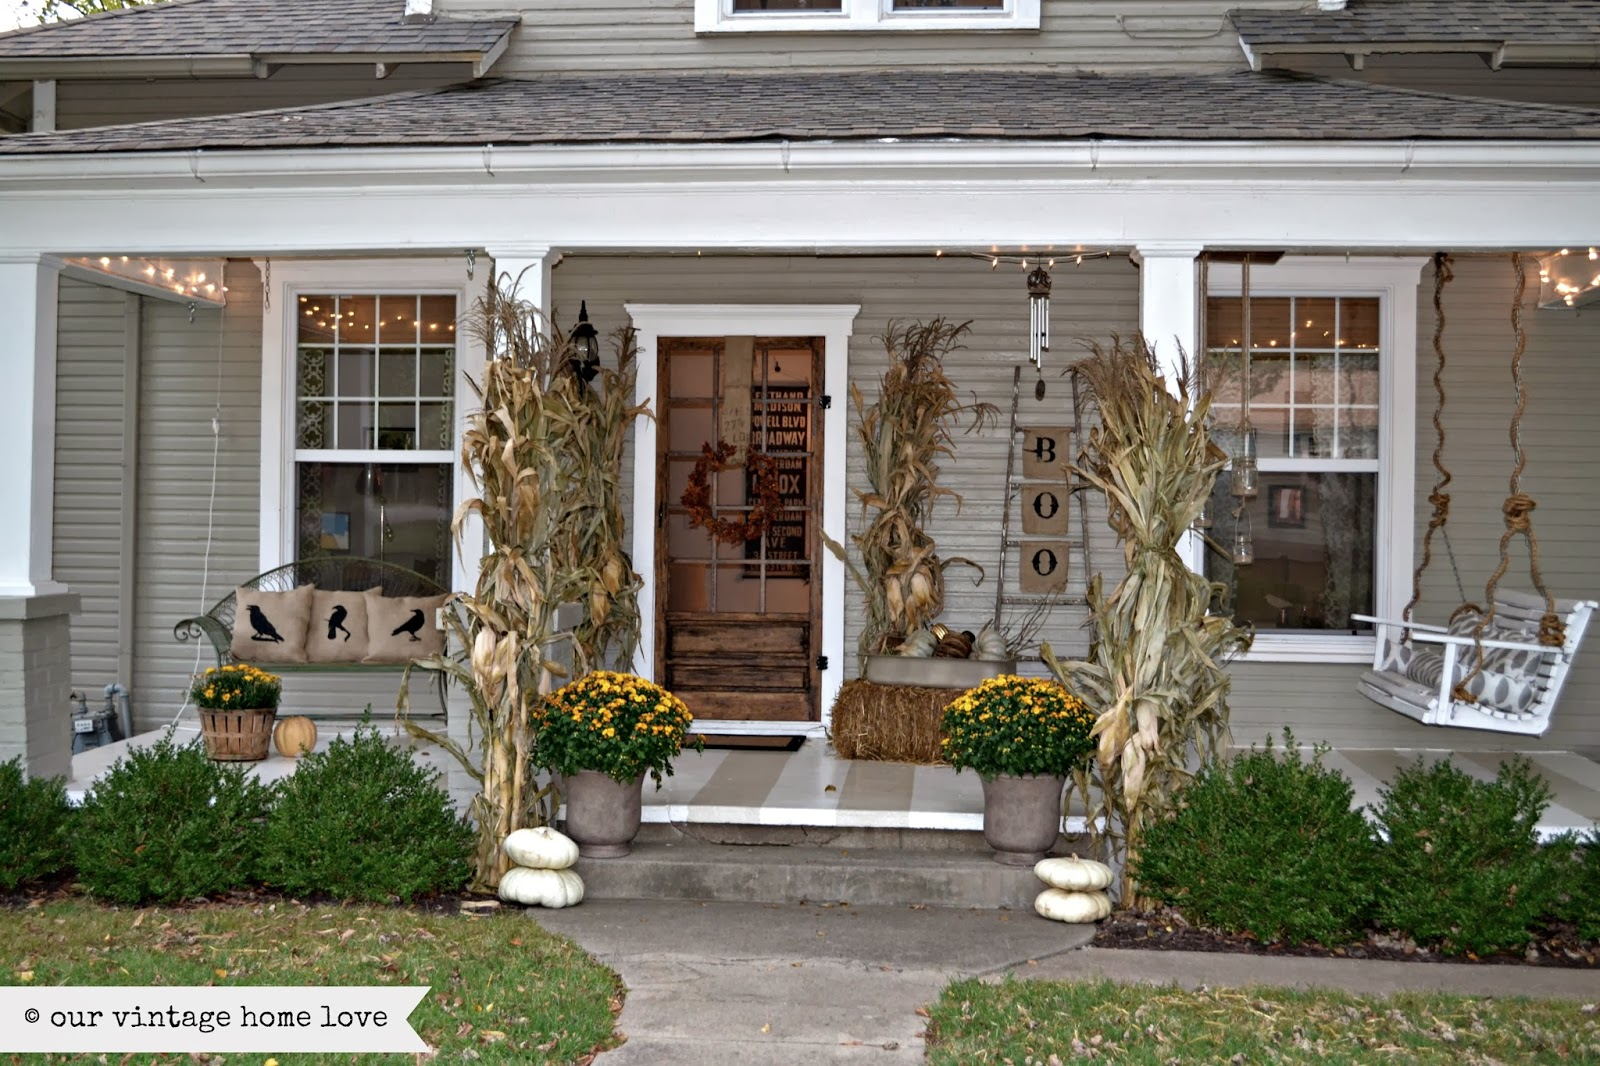 Fall Porch Ideas & vintage home love: Fall Porch Ideas